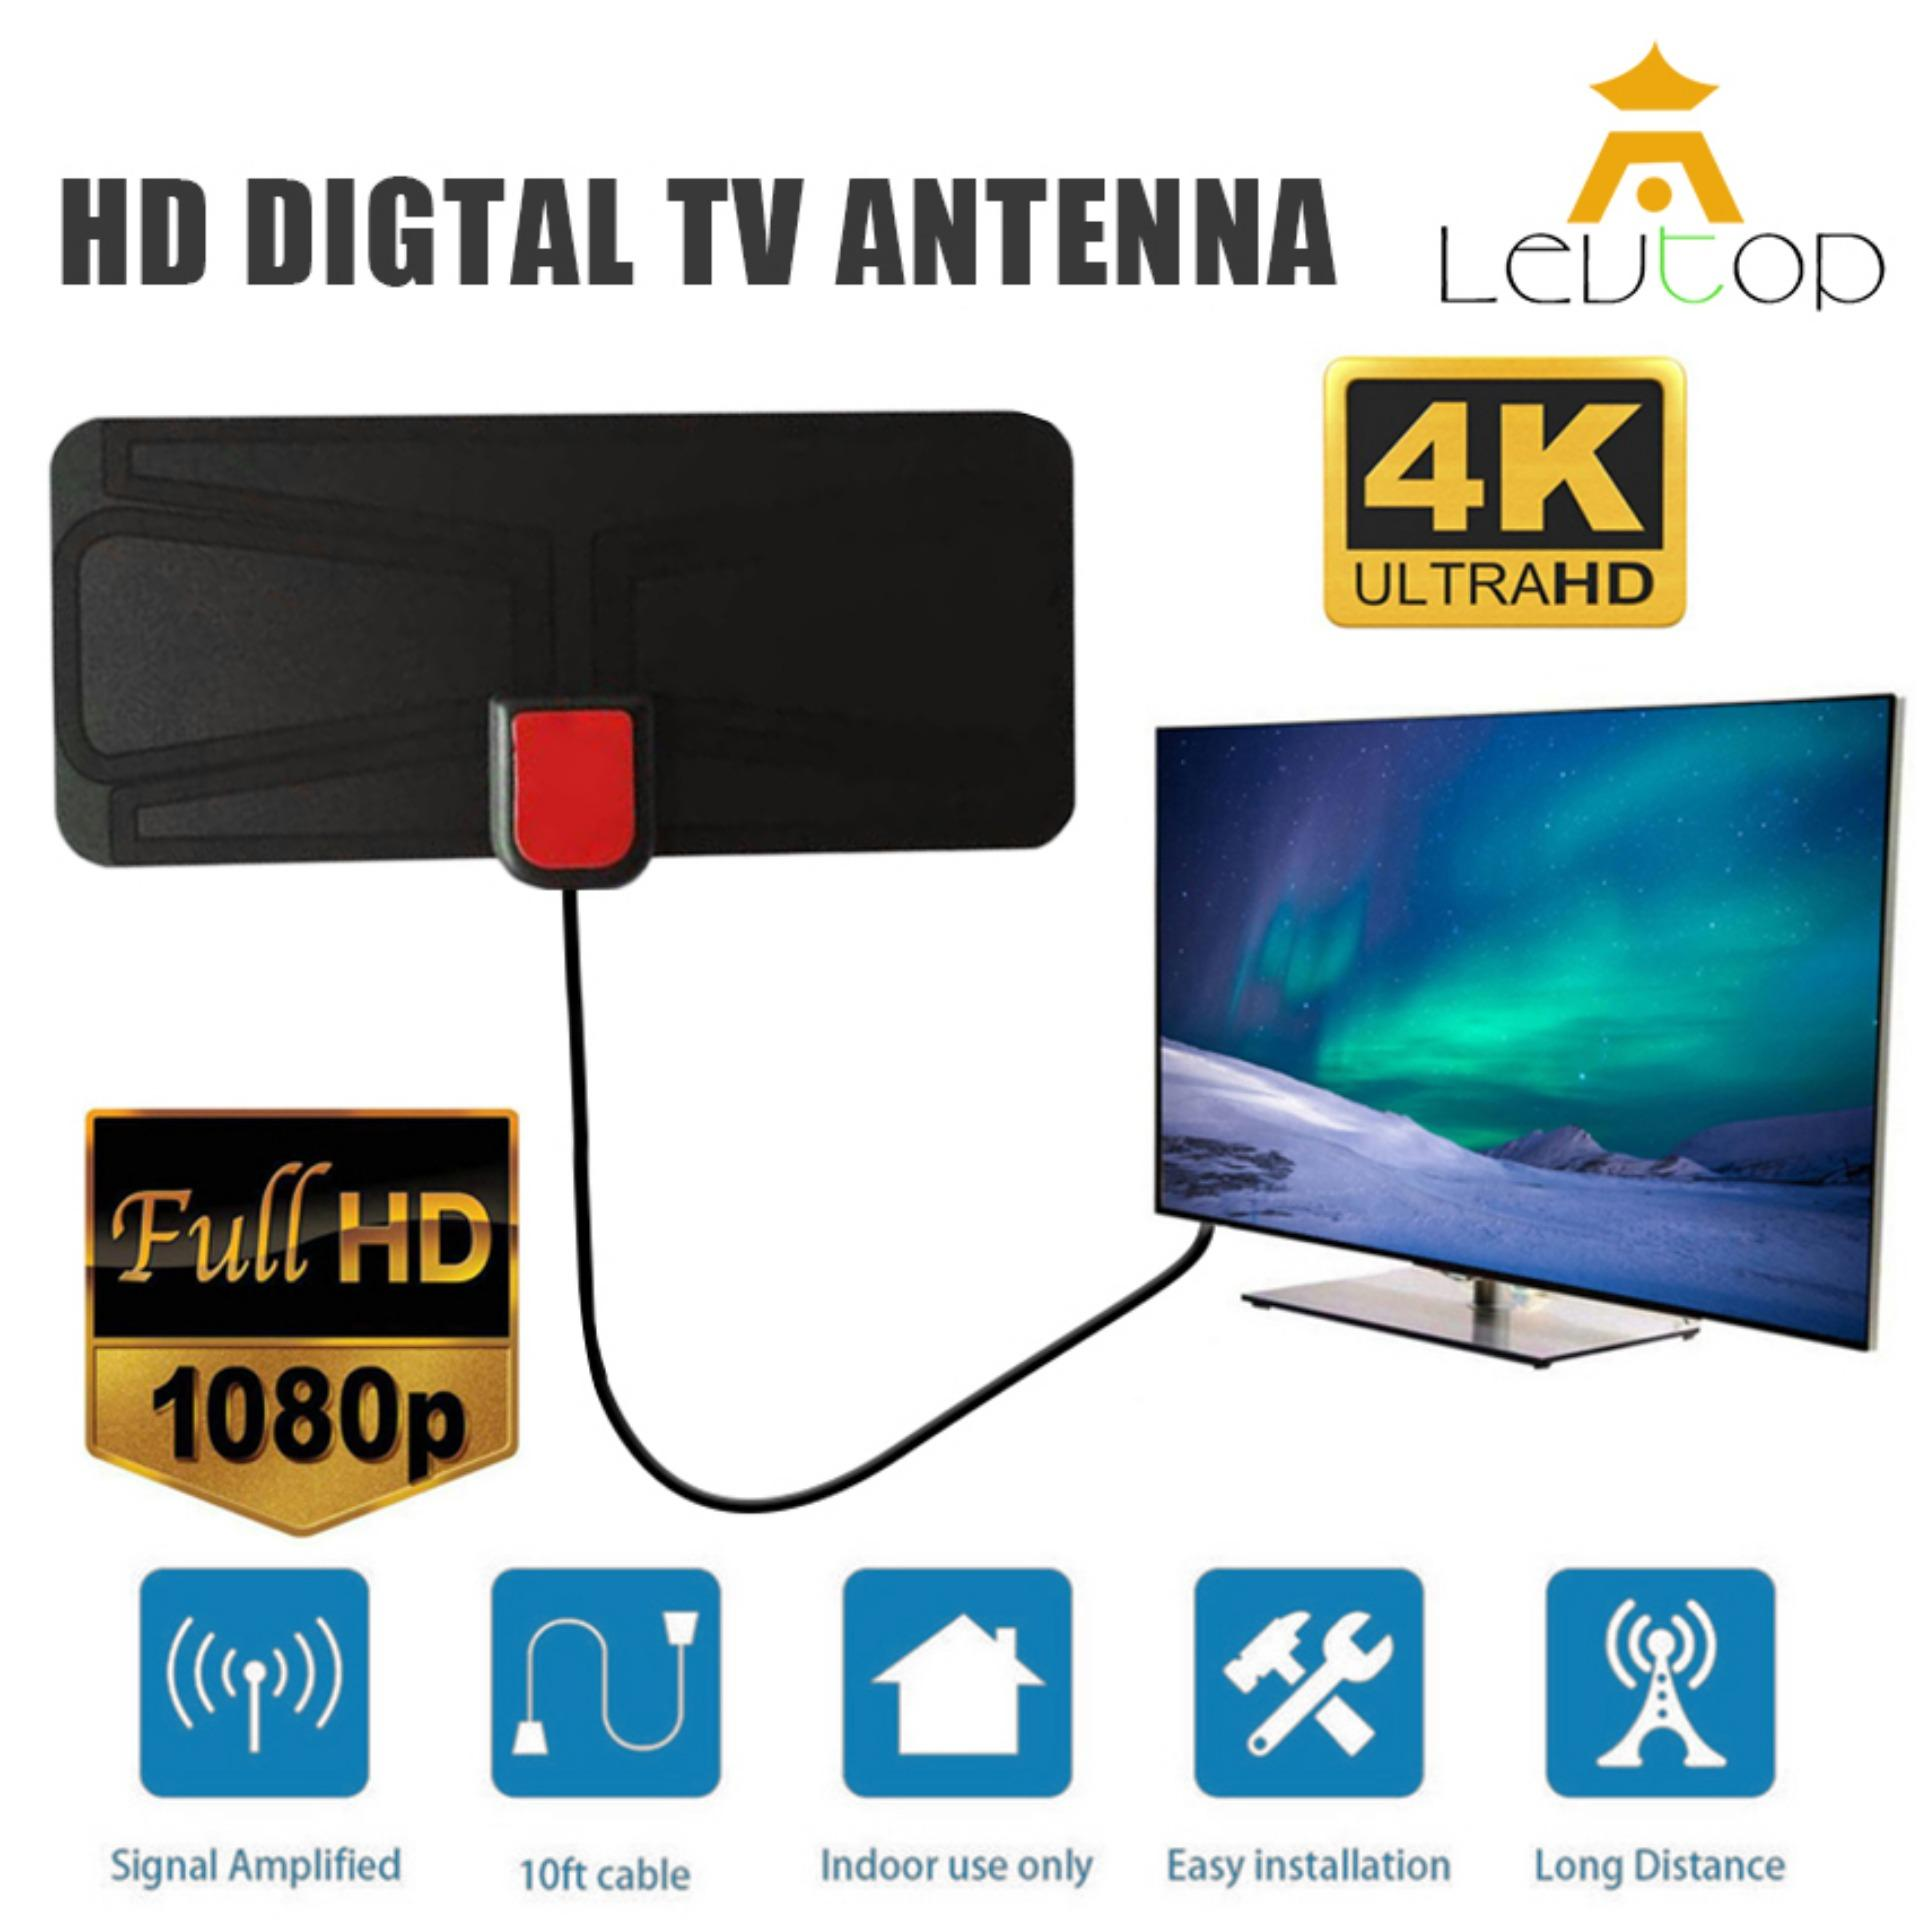 Levtop Indoor Digital Tv Antenna Amplified Hdtv Antenna 50 Miles Range High Gain Full Hd 4k 1080p Detachable Amplified Signal Booster With (3+1)m Cable By Levtop.